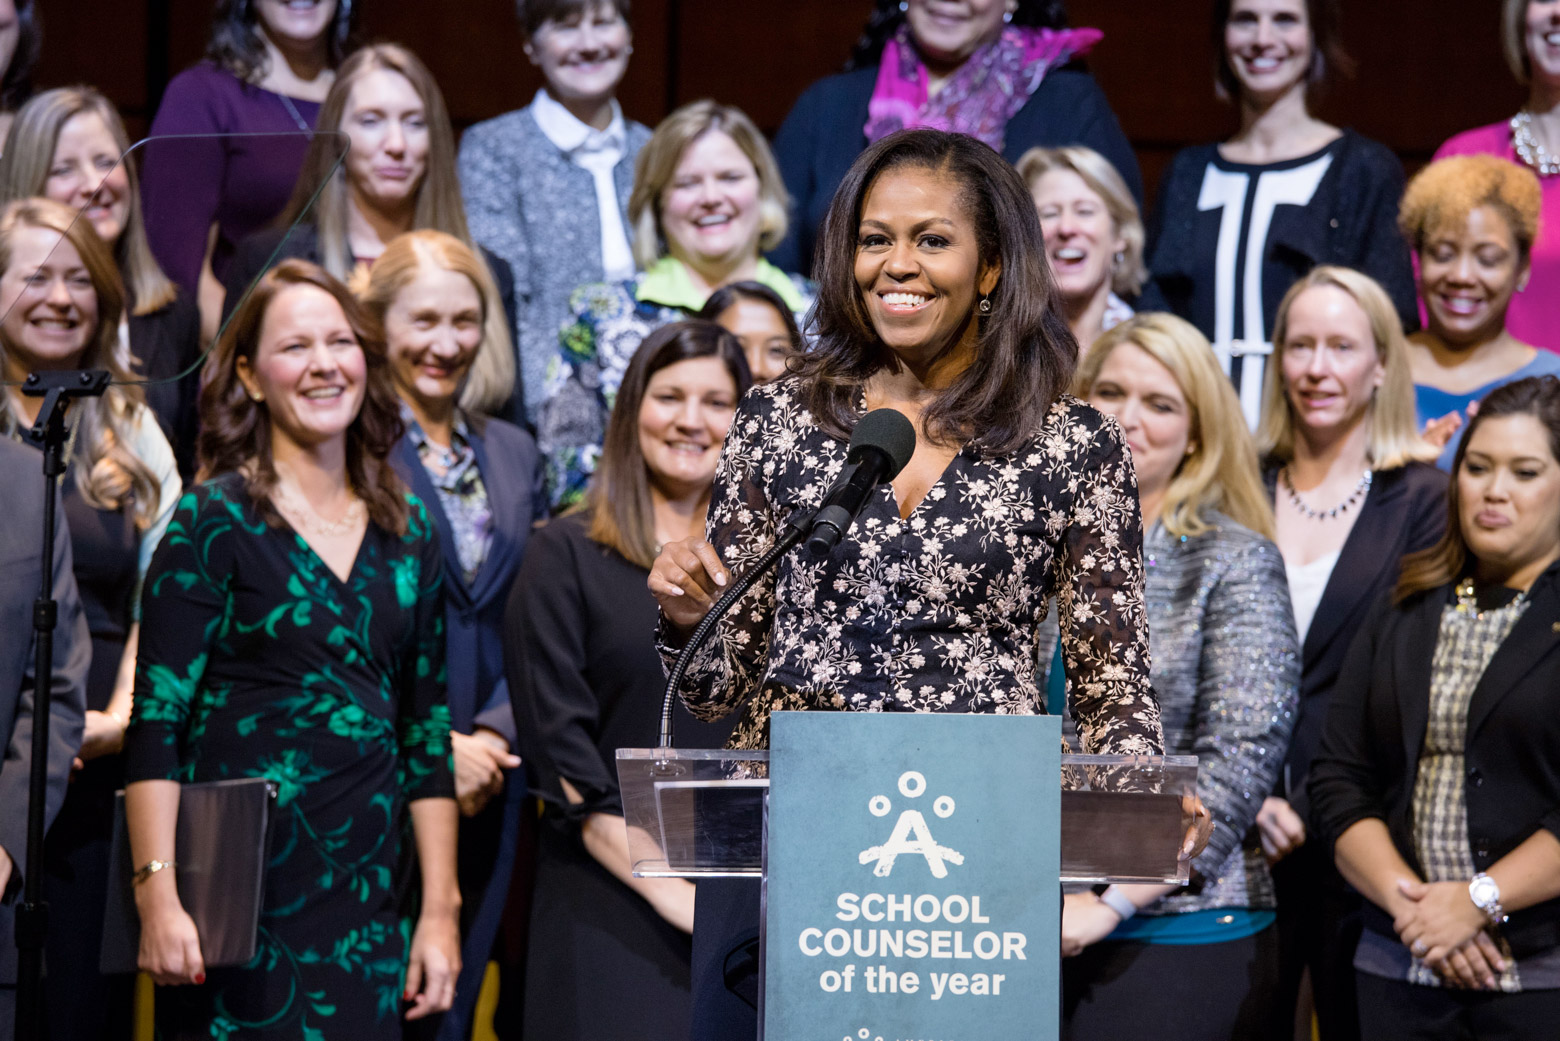 Michelle ObamaSchool Counselor of the YearCredit: Chuck Kennedy